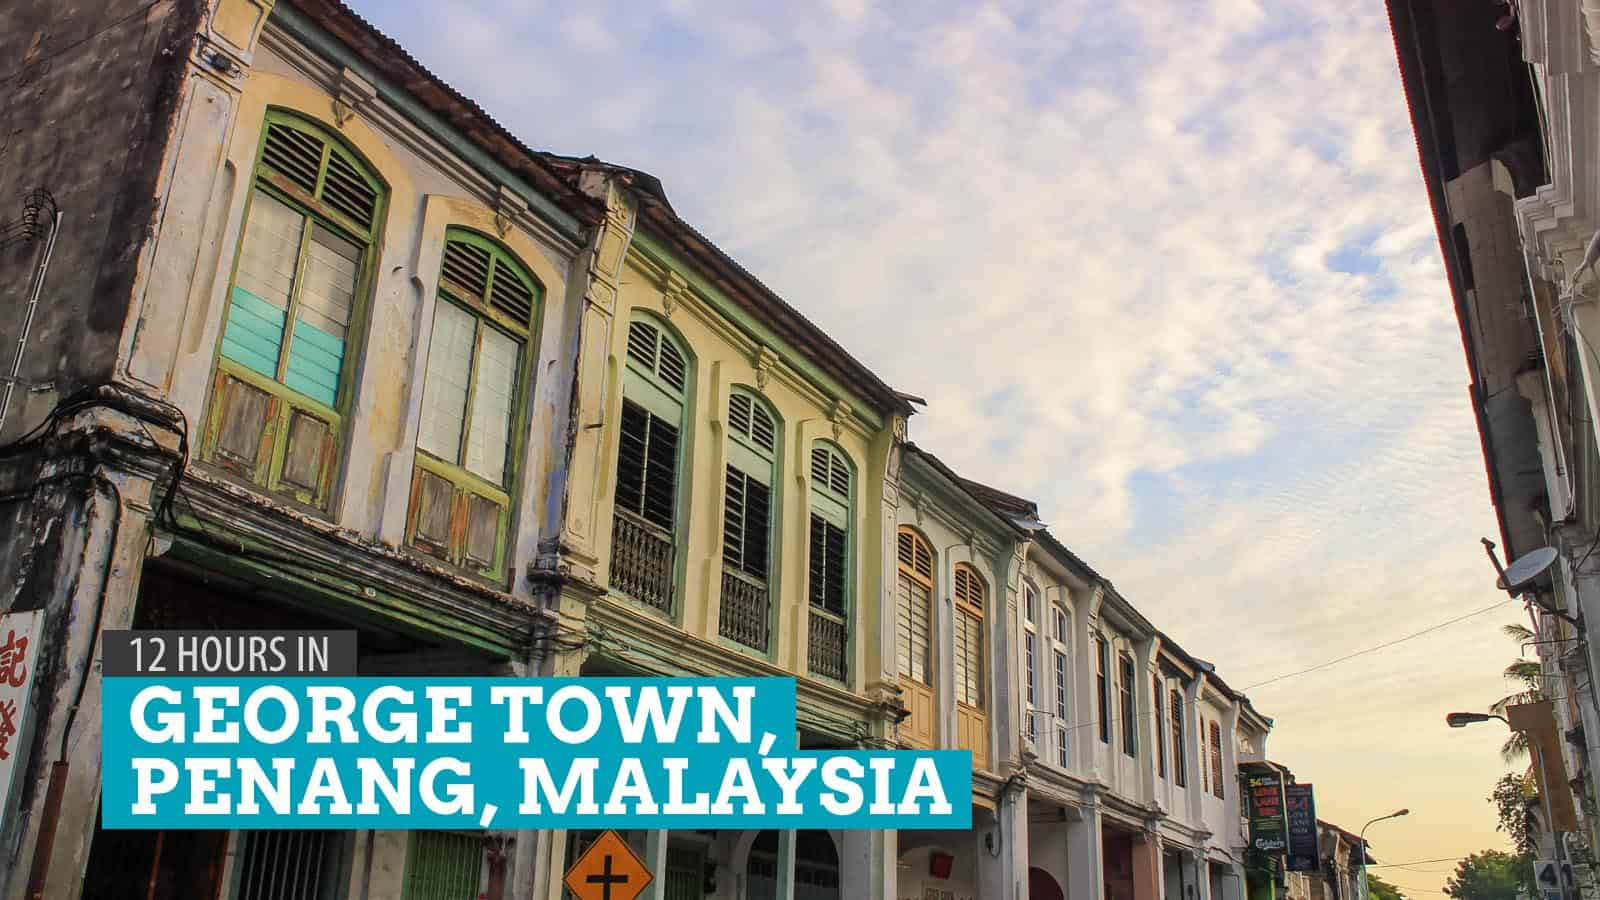 12 Hours in George Town, Penang, Malaysia